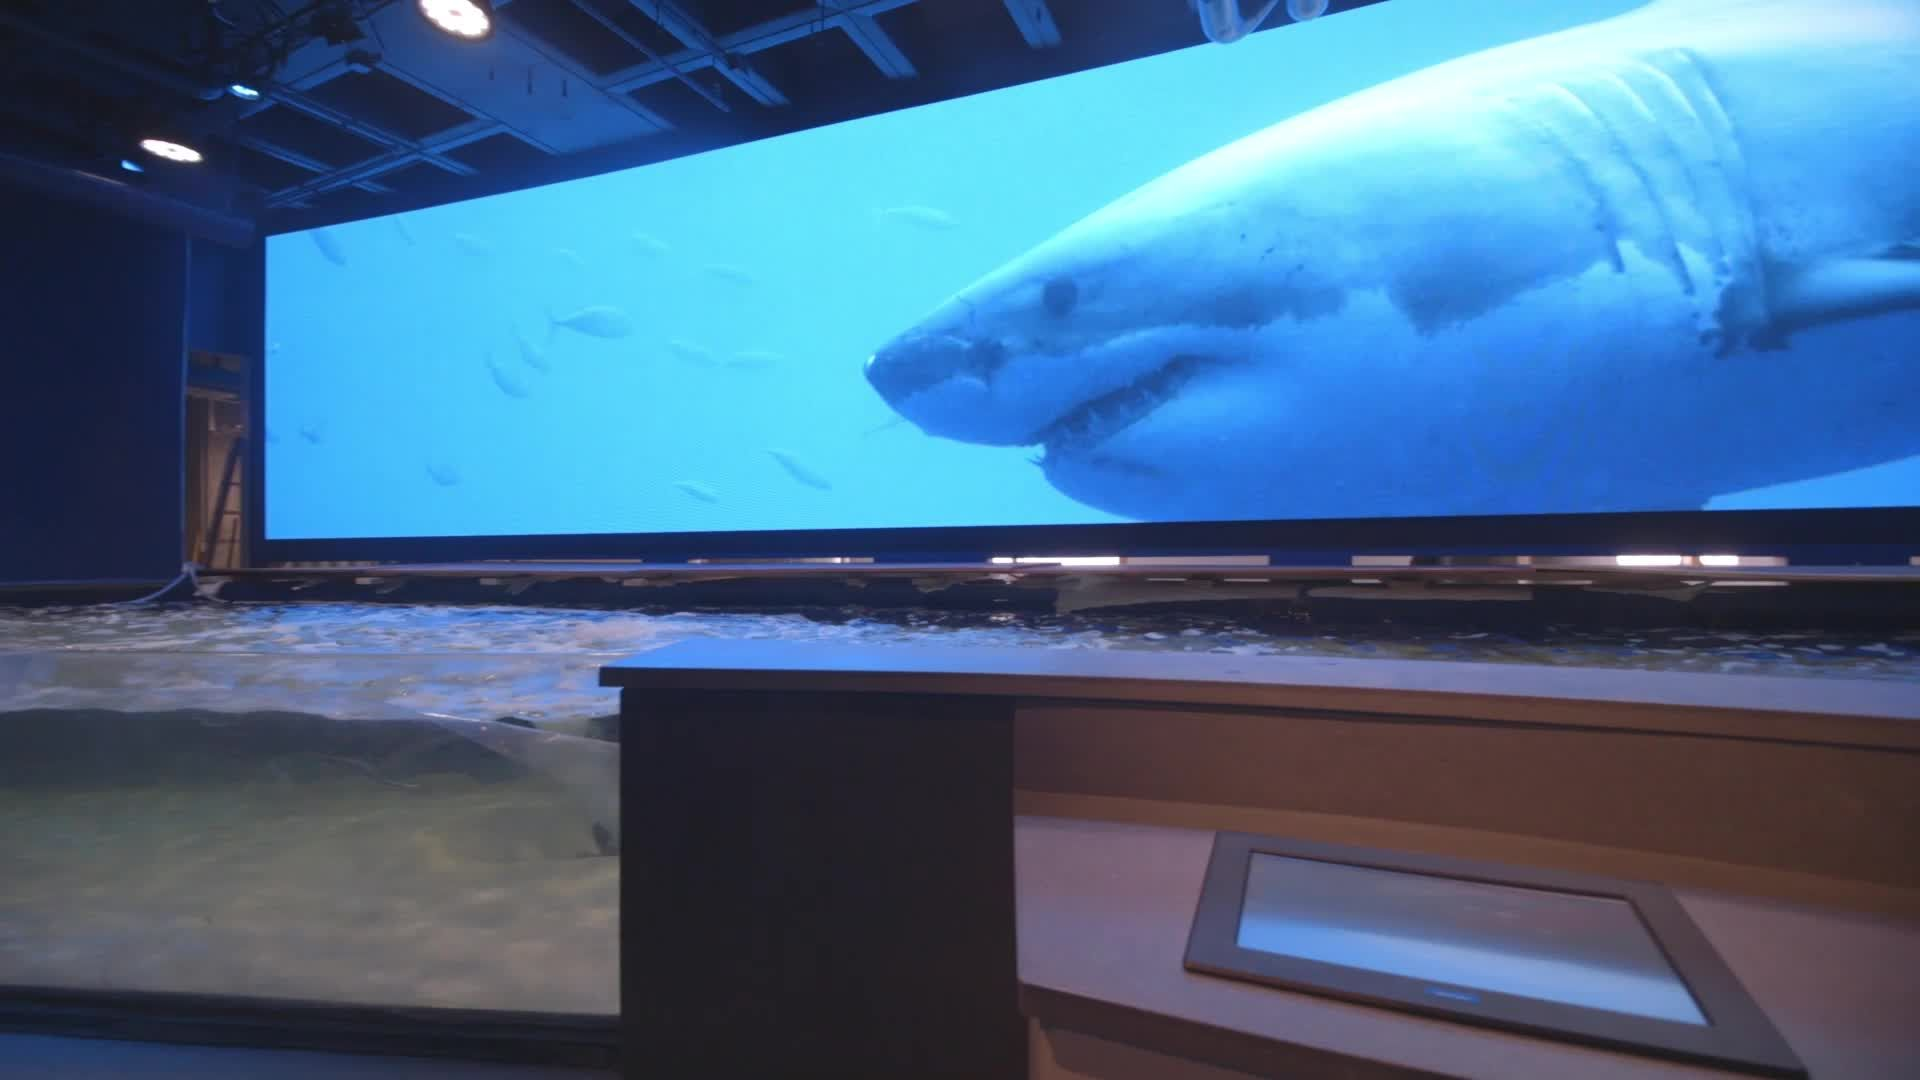 Shark Discovery touchpool opening soon at Aquarium